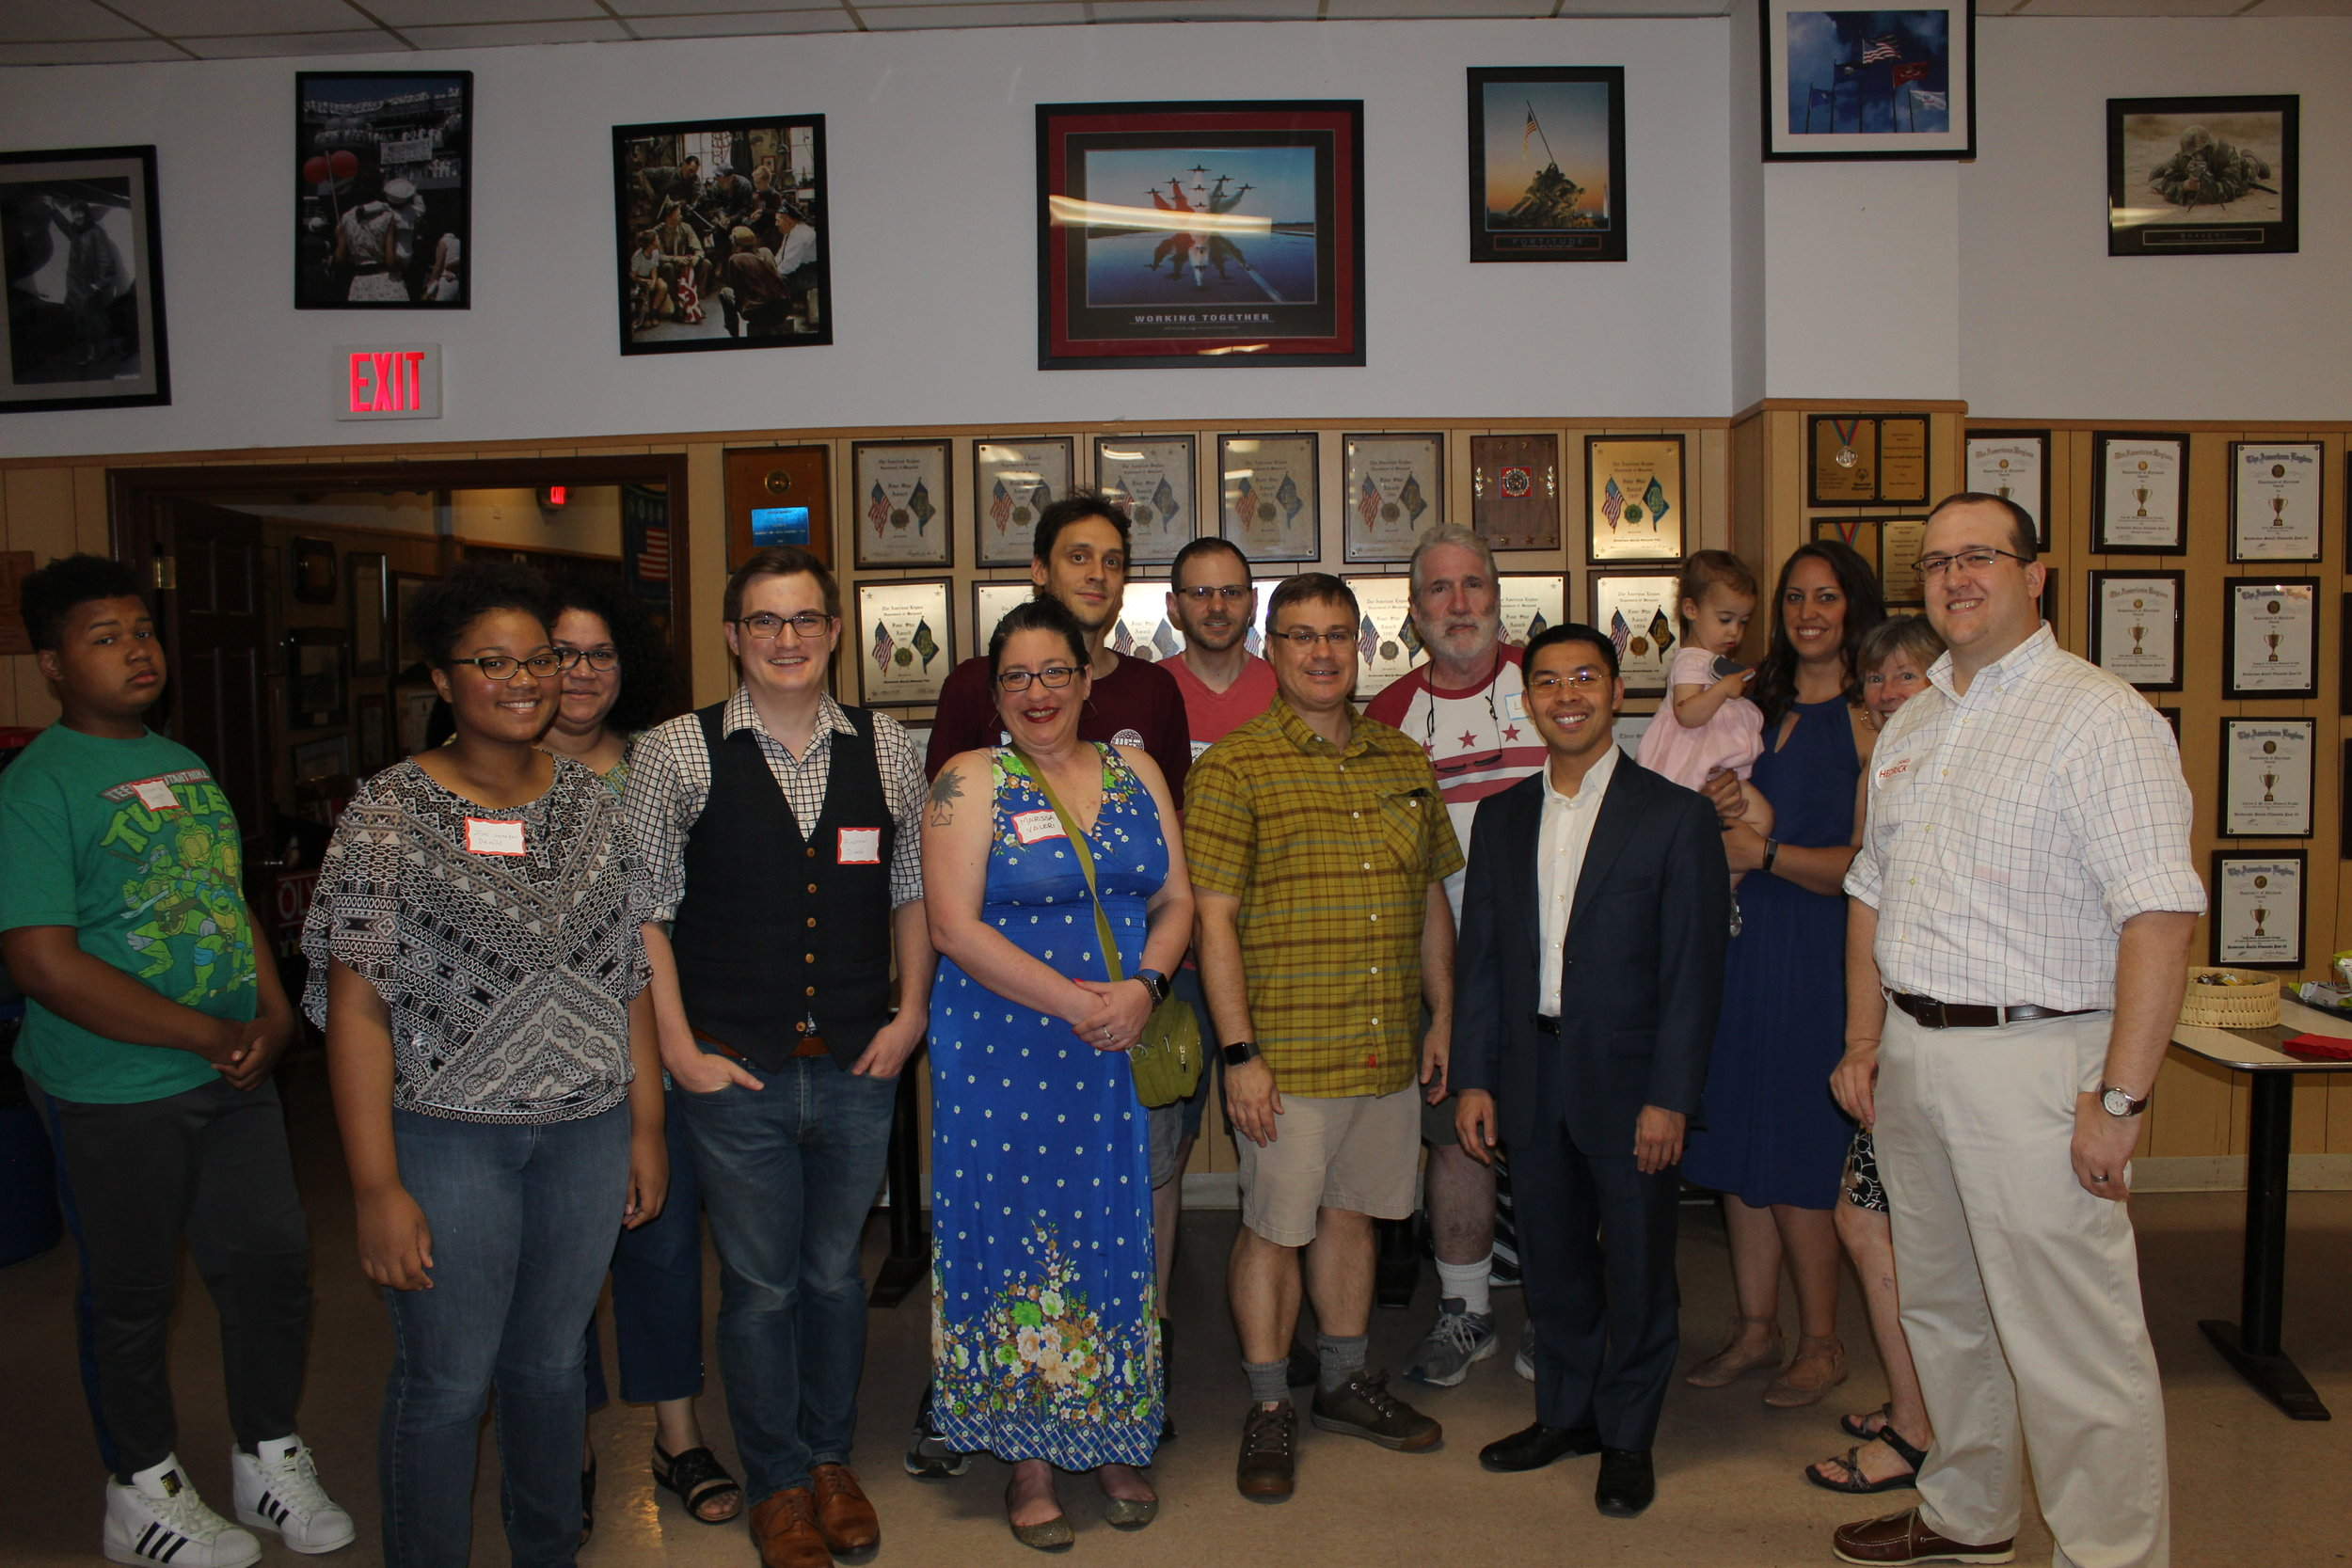 A great group shot with a bunch of James 4 Rockville supporters!